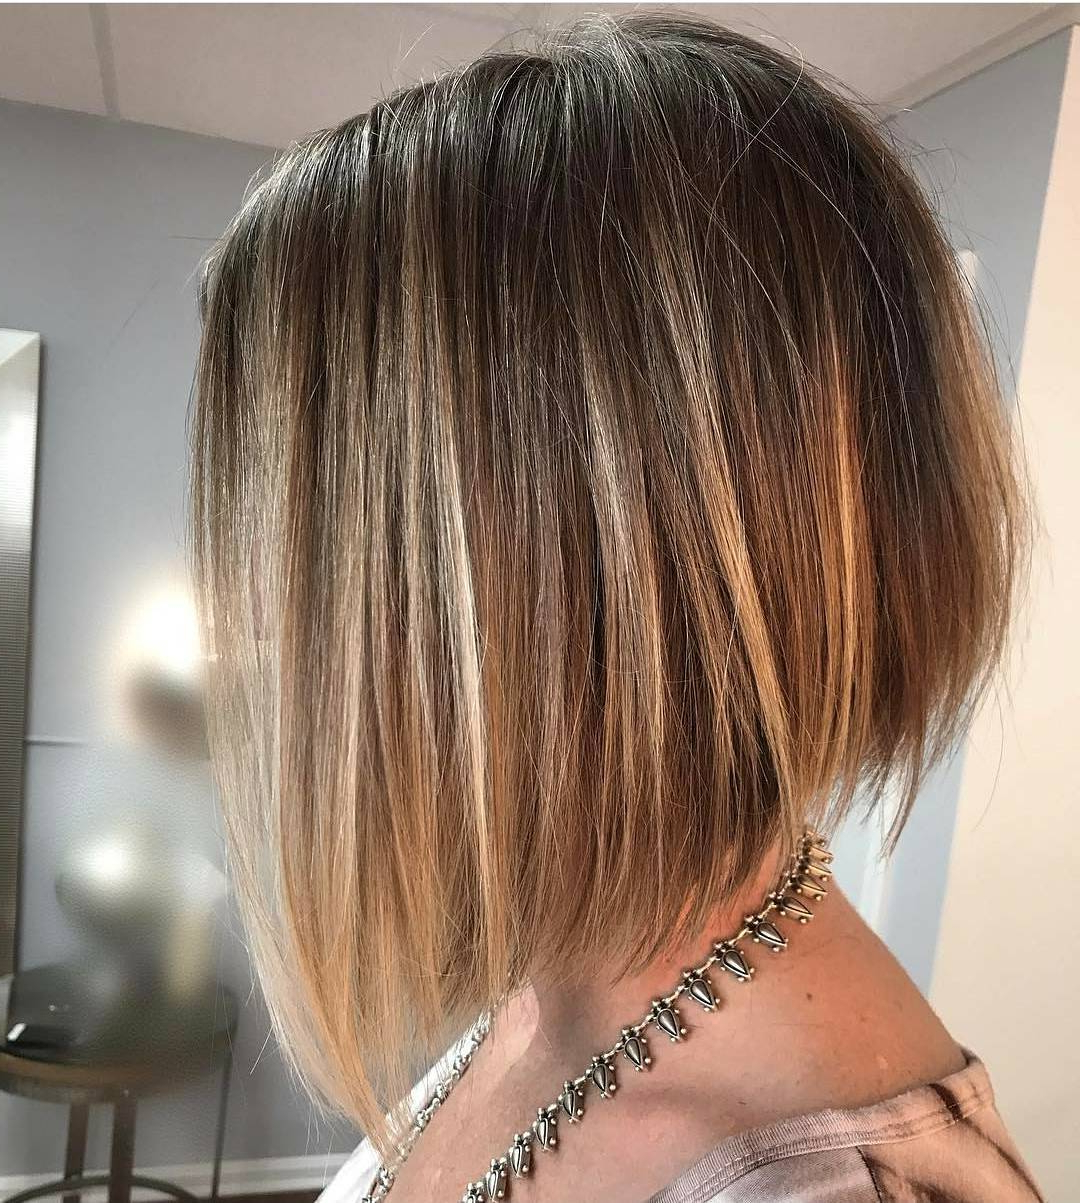 10 Flattering Short Straight Hairstyles 2019 With Short Stacked Bob Hairstyles With Subtle Balayage (View 2 of 20)